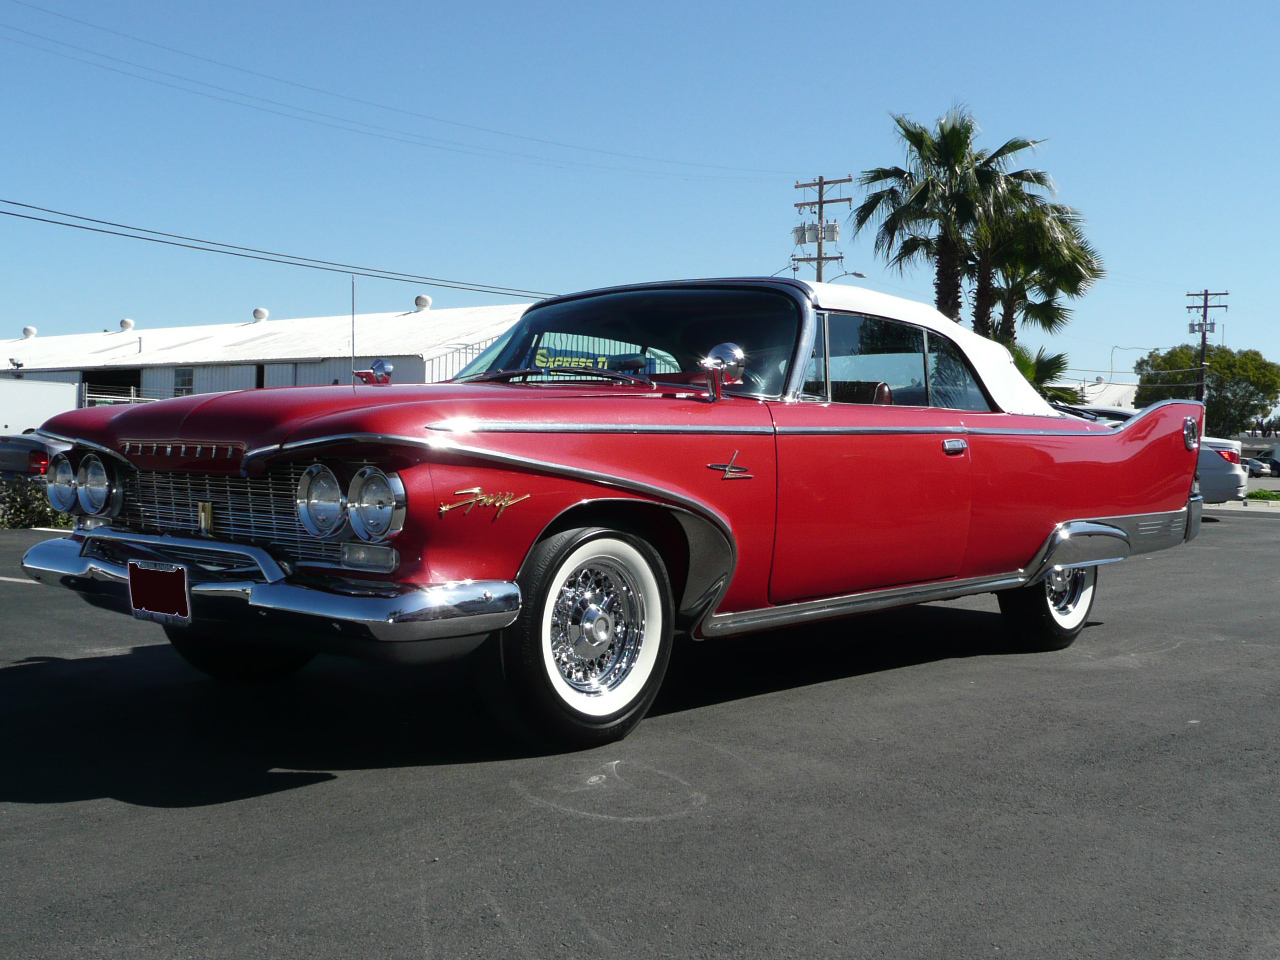 1960 PLYMOUTH FURY CONVERTIBLE - Front 3/4 - 80939